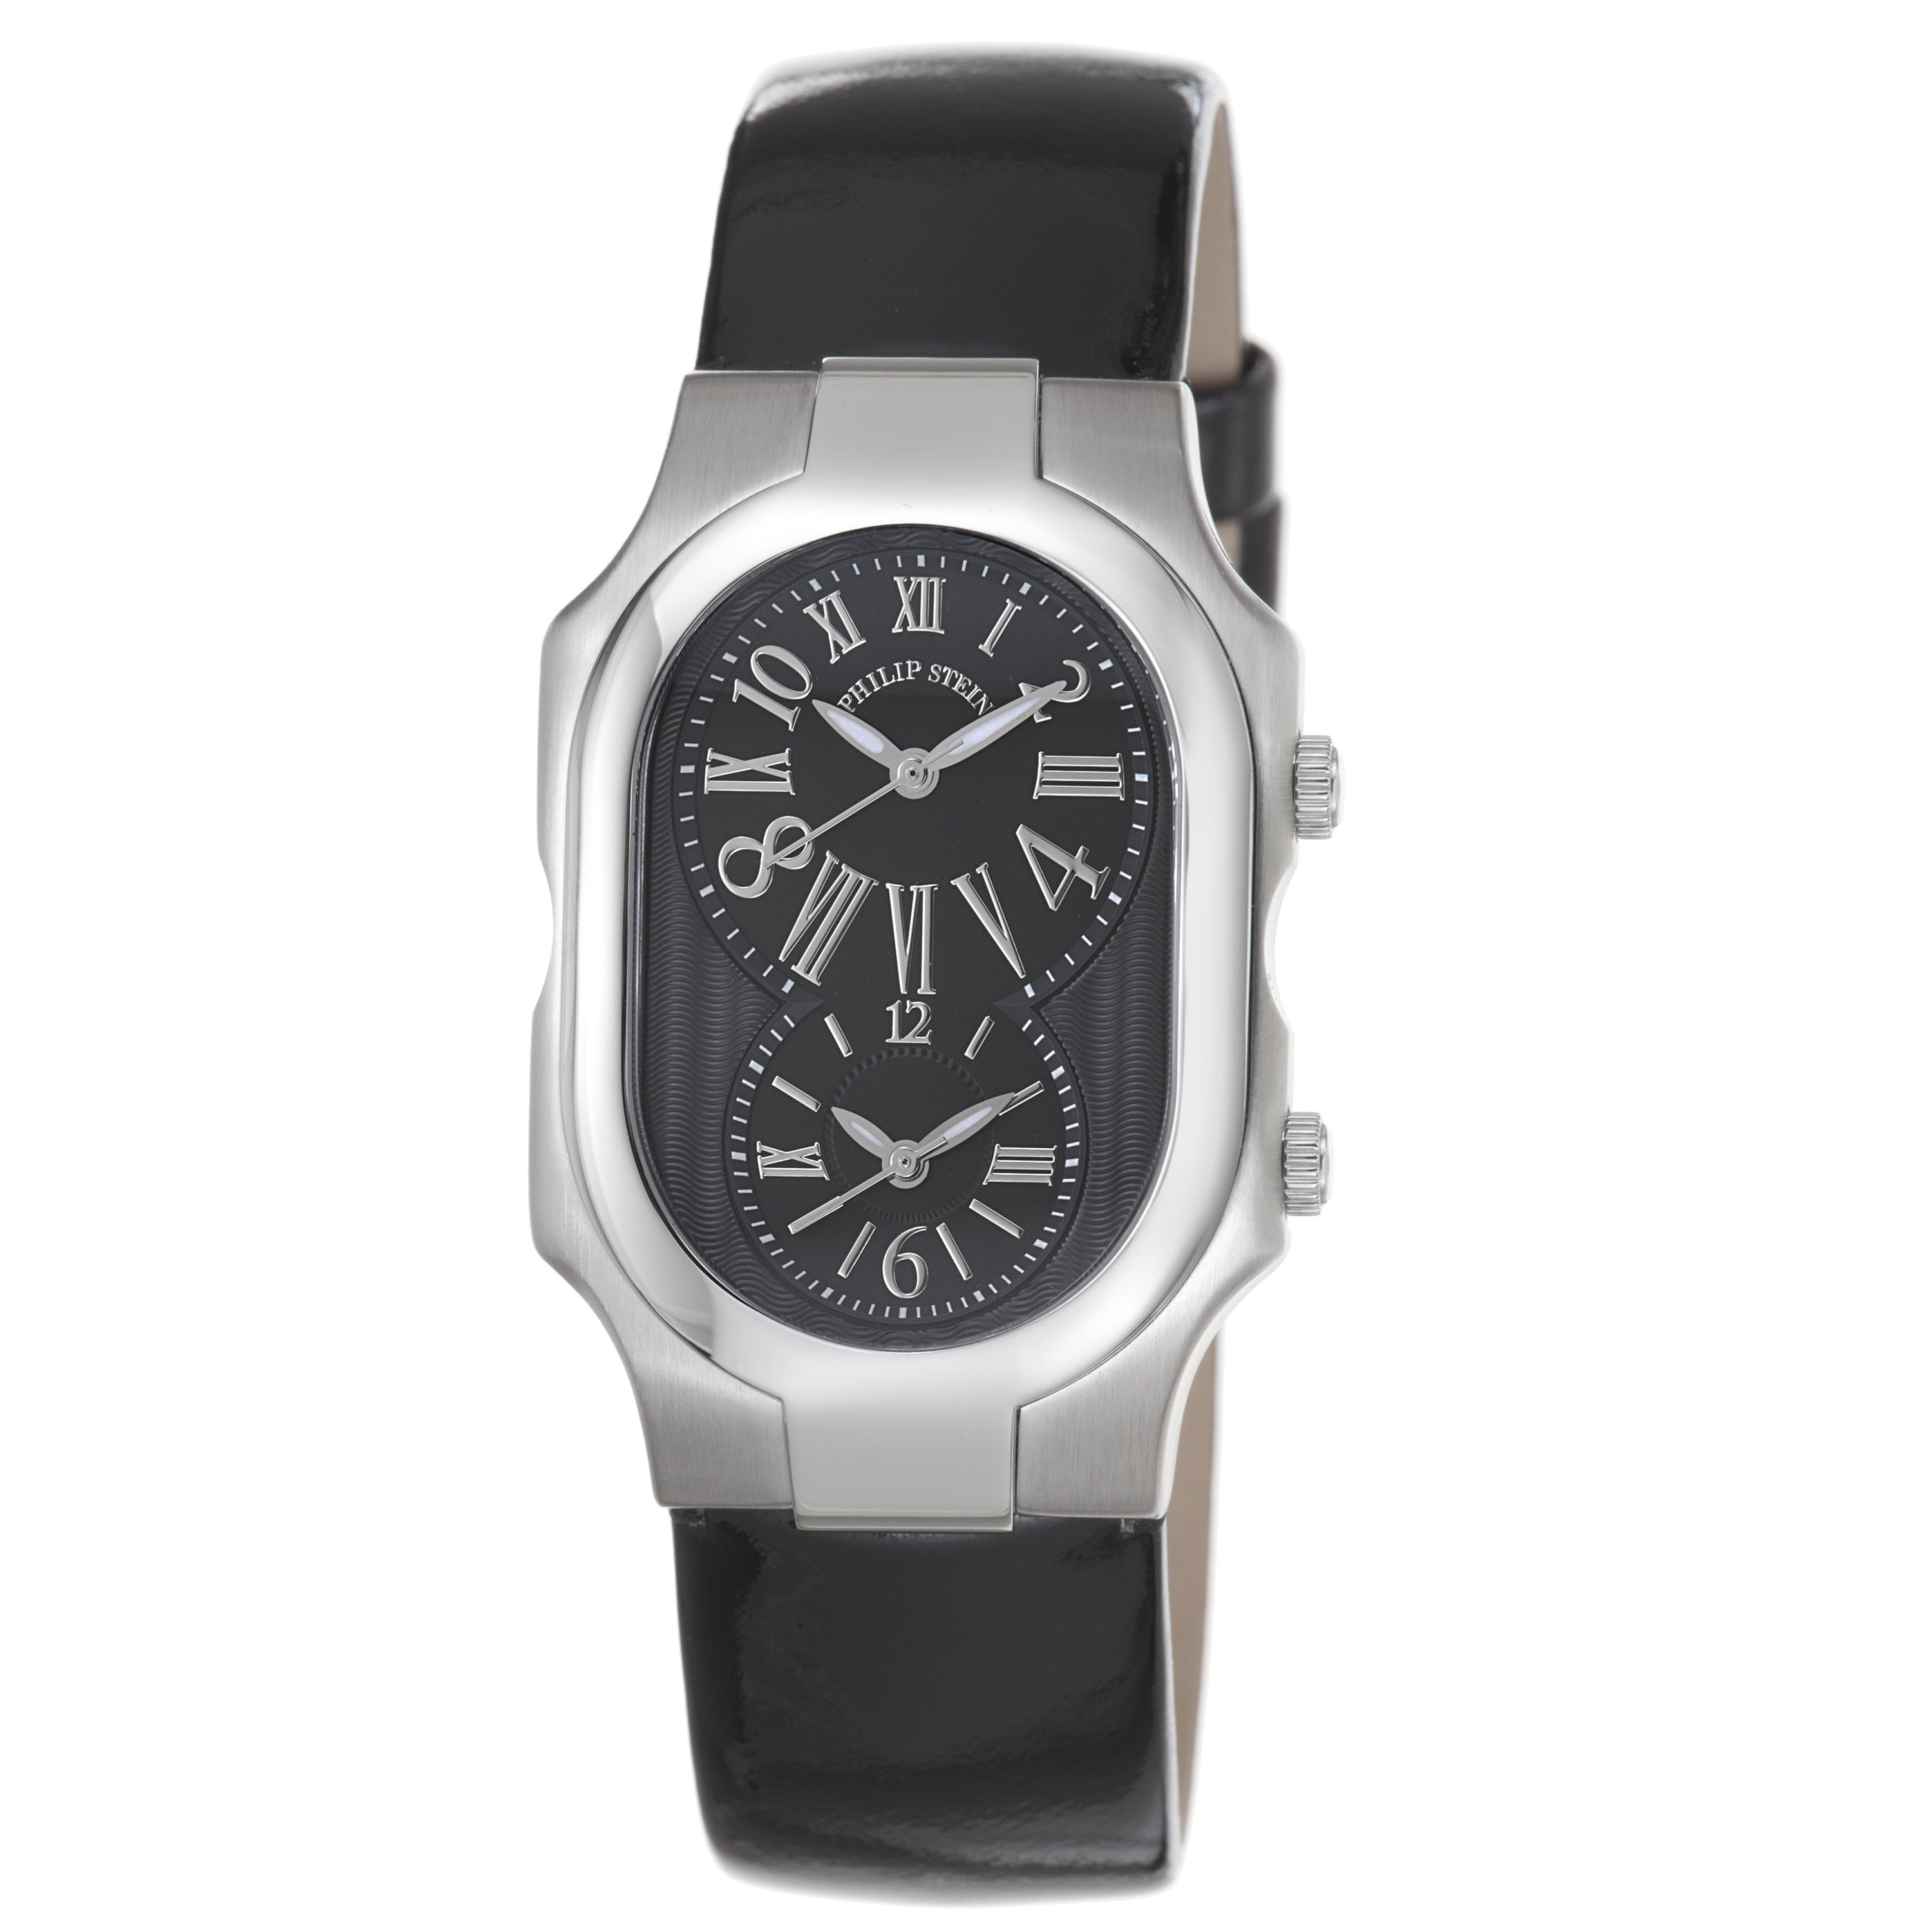 Philip stein women 39 s 39 signature 39 black patent leather strap watch with silvertone hands for Philip stein watches